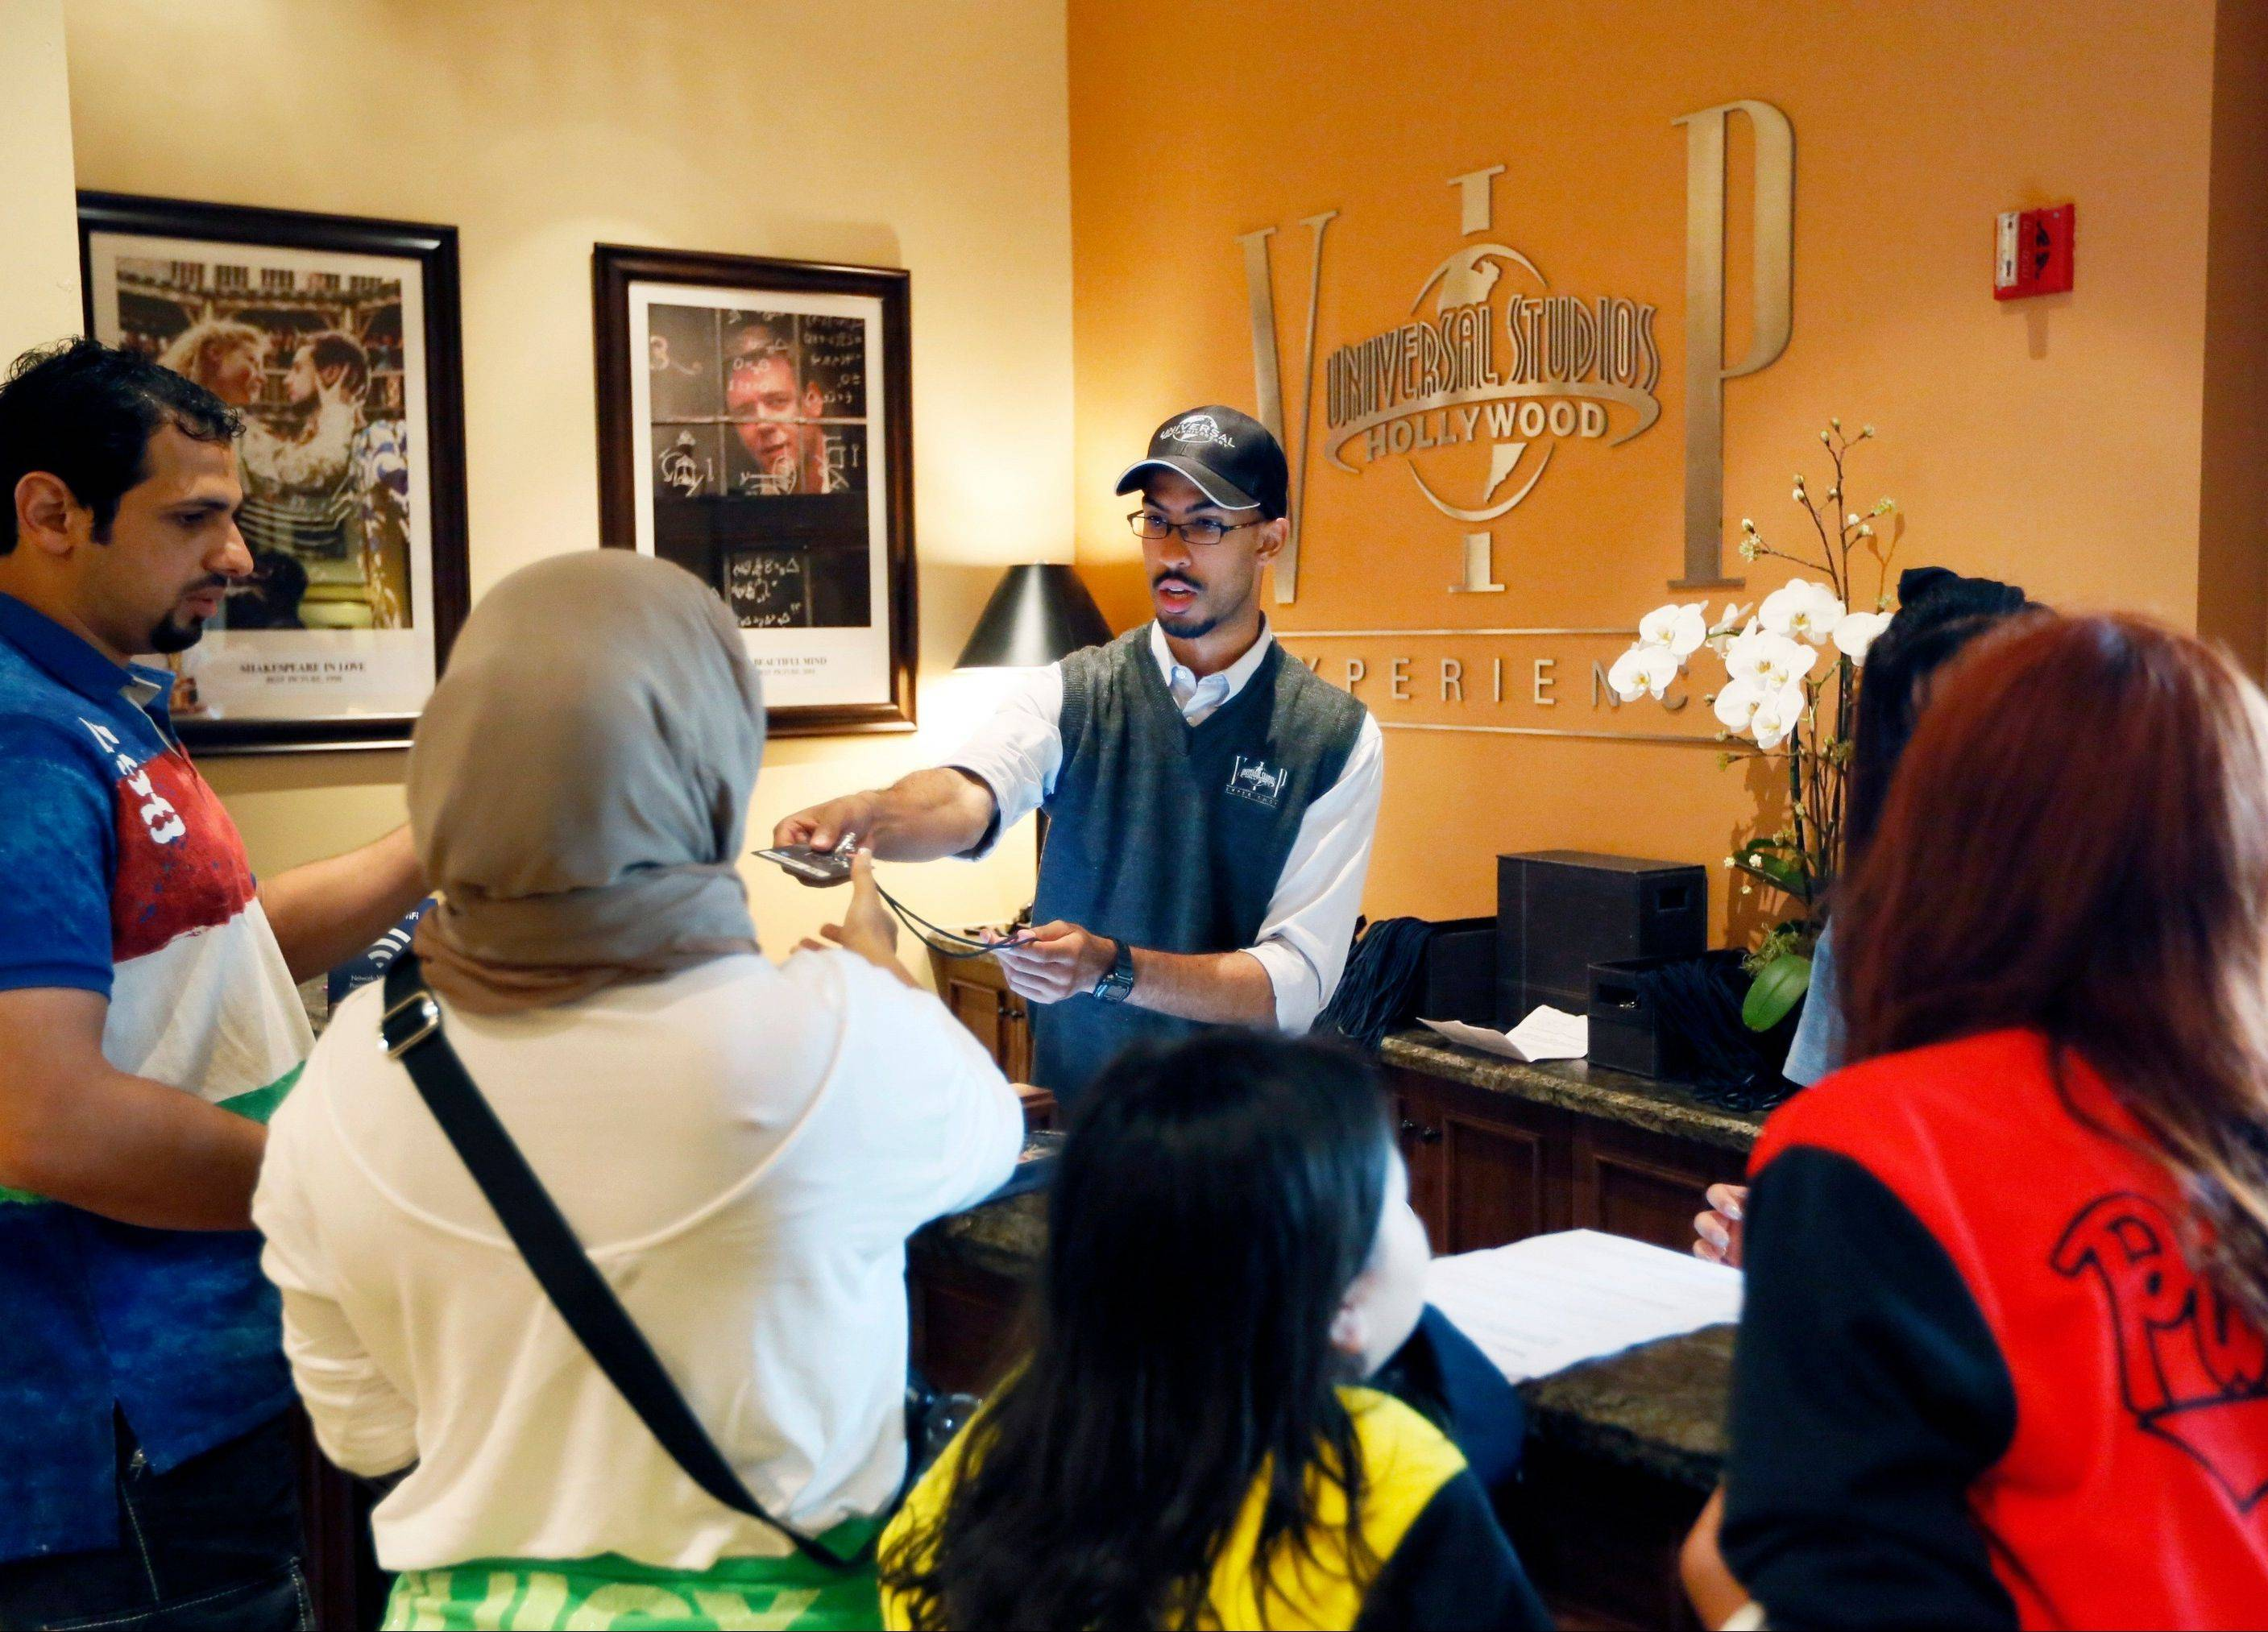 Tourists get instructions at the VIP Experience counter at Universal Studios in Los Angeles.